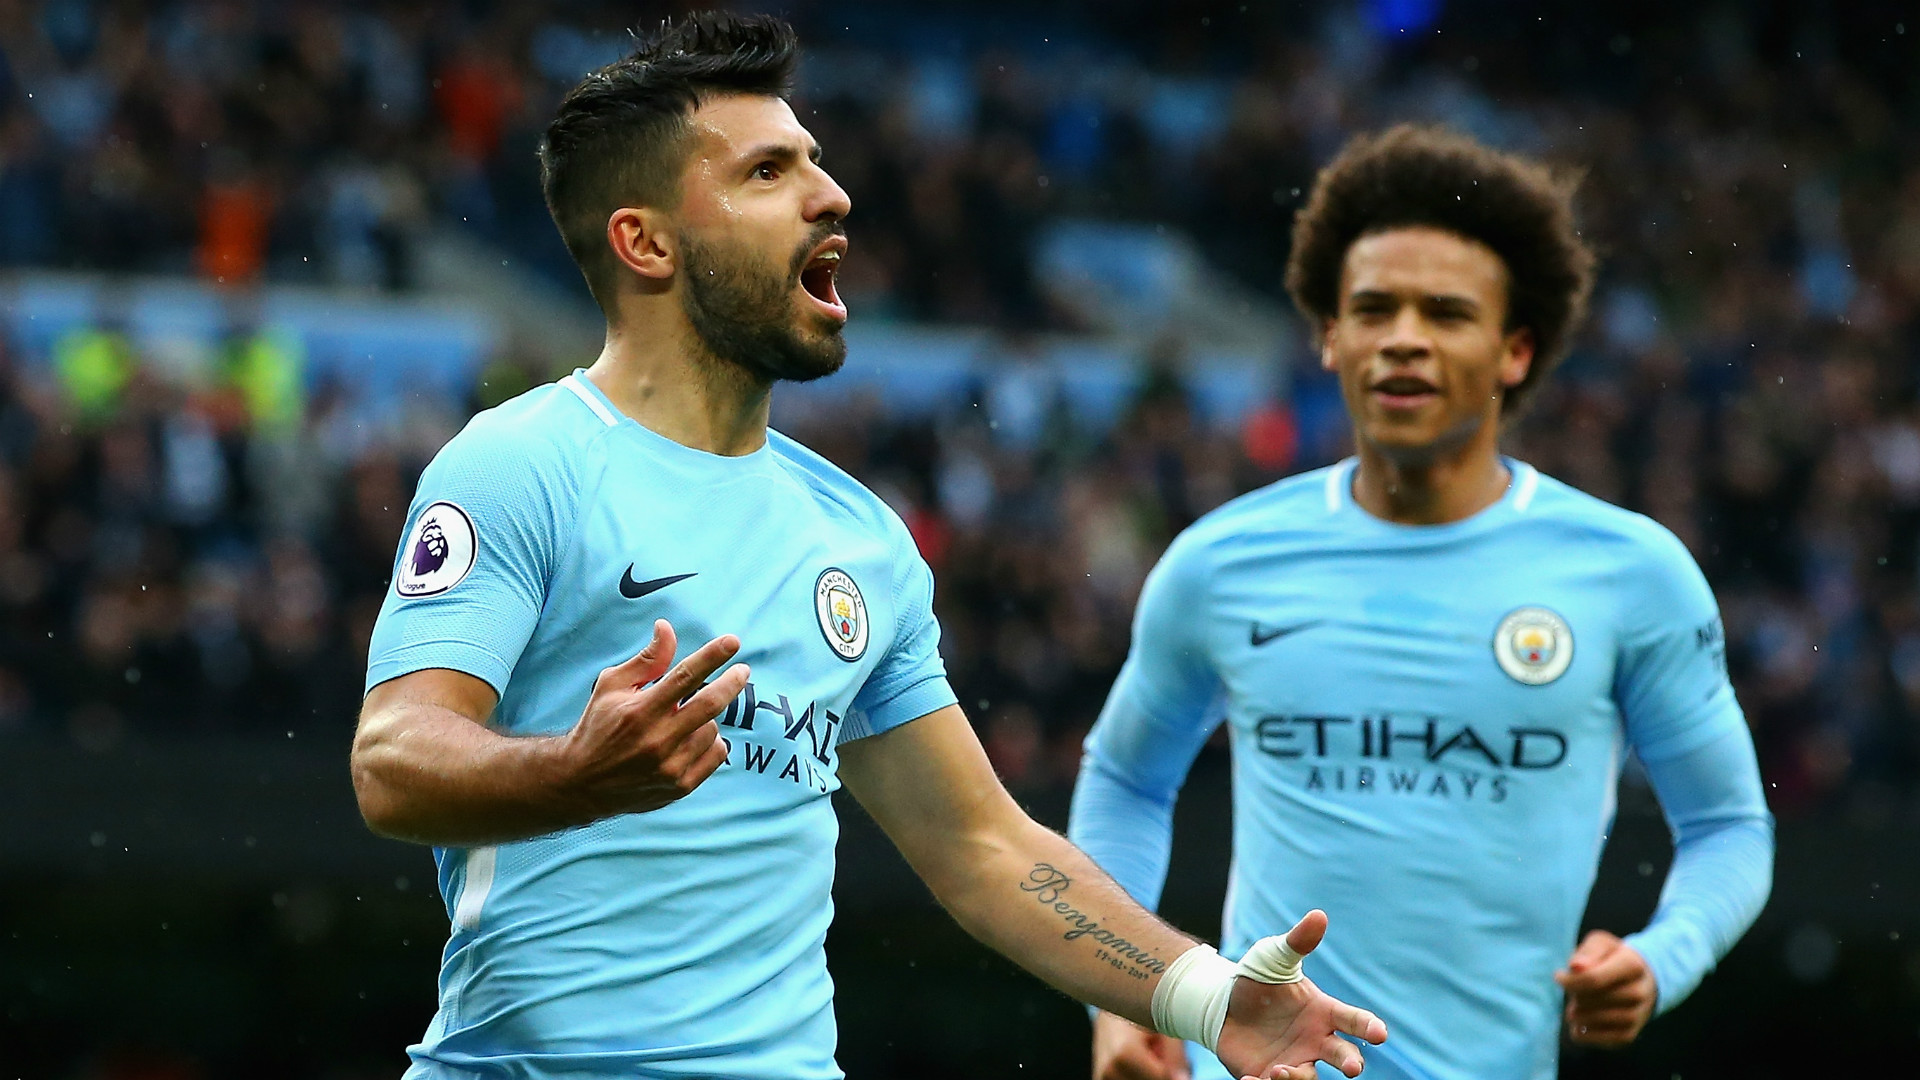 Guardiola: Man City aren't new Invincibles